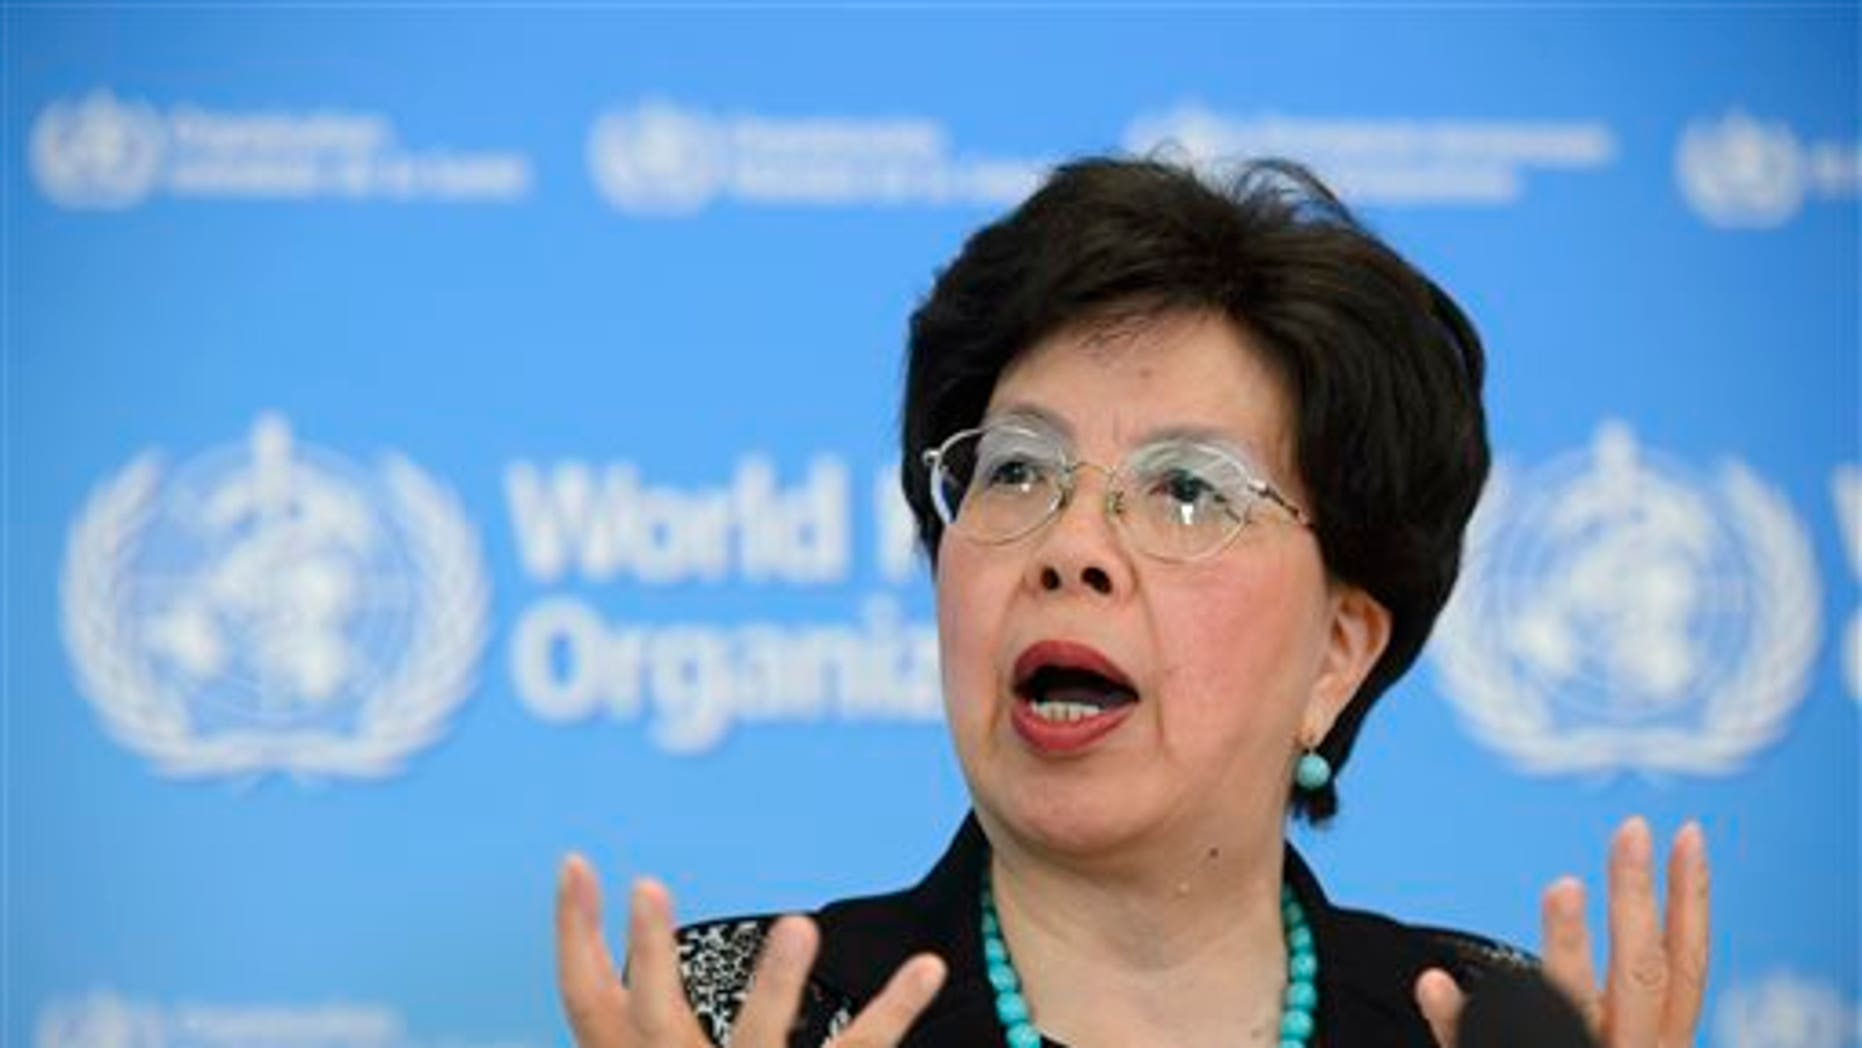 In this Friday, Sept. 12, 2014, file photo, Director-General of the World Health Organization (WHO) Dr. Margaret Chan speaks during a news conference about support to countries affected by the Ebola virus, at WHO headquarters in Geneva, Switzerland. (AP Photo/Keystone, Martial Trezzini, File)